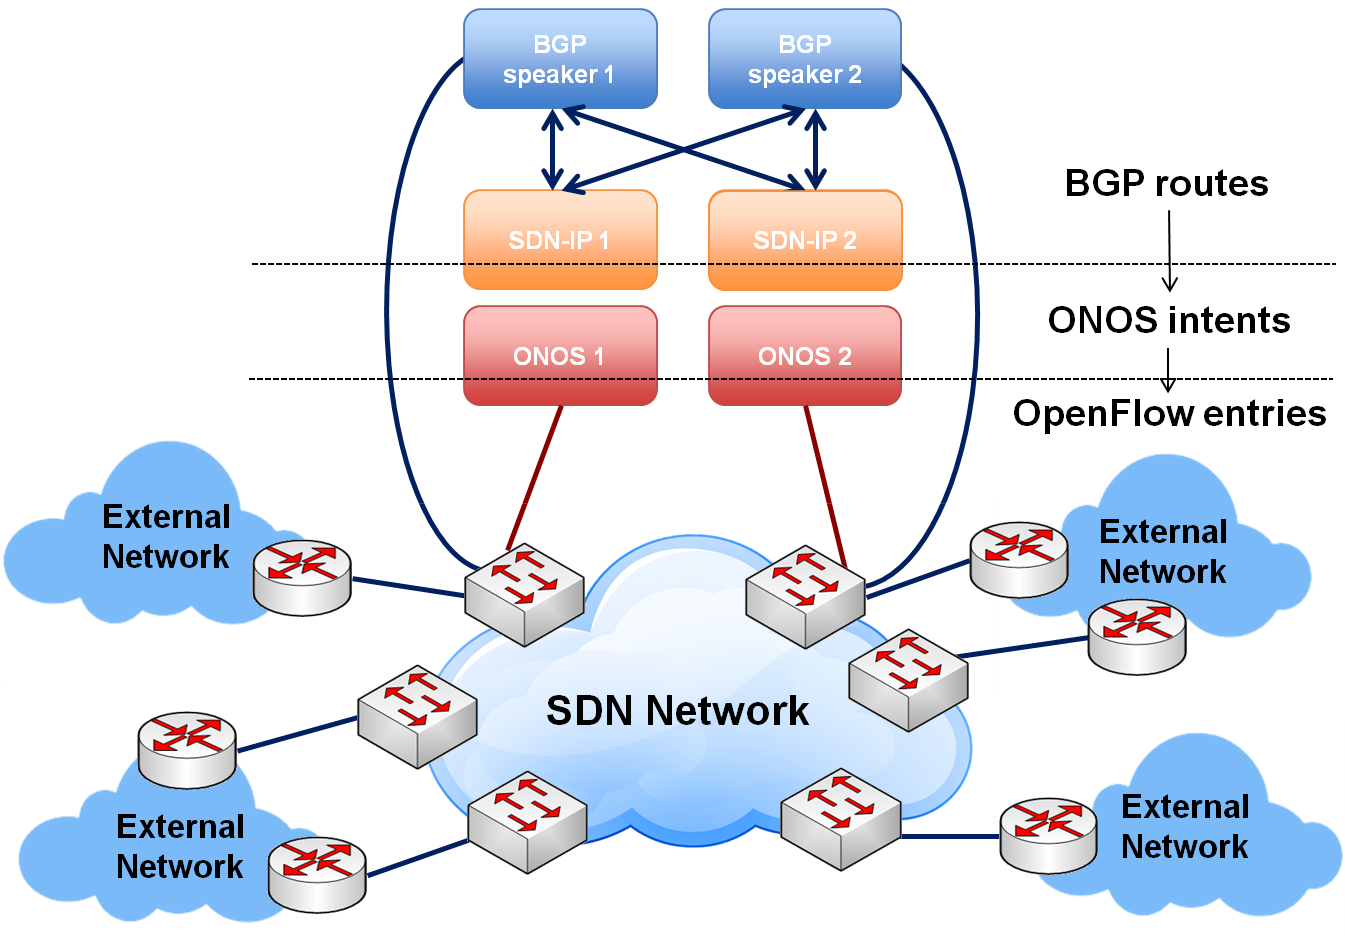 Sdn ip architecture onos wiki the ccuart Images